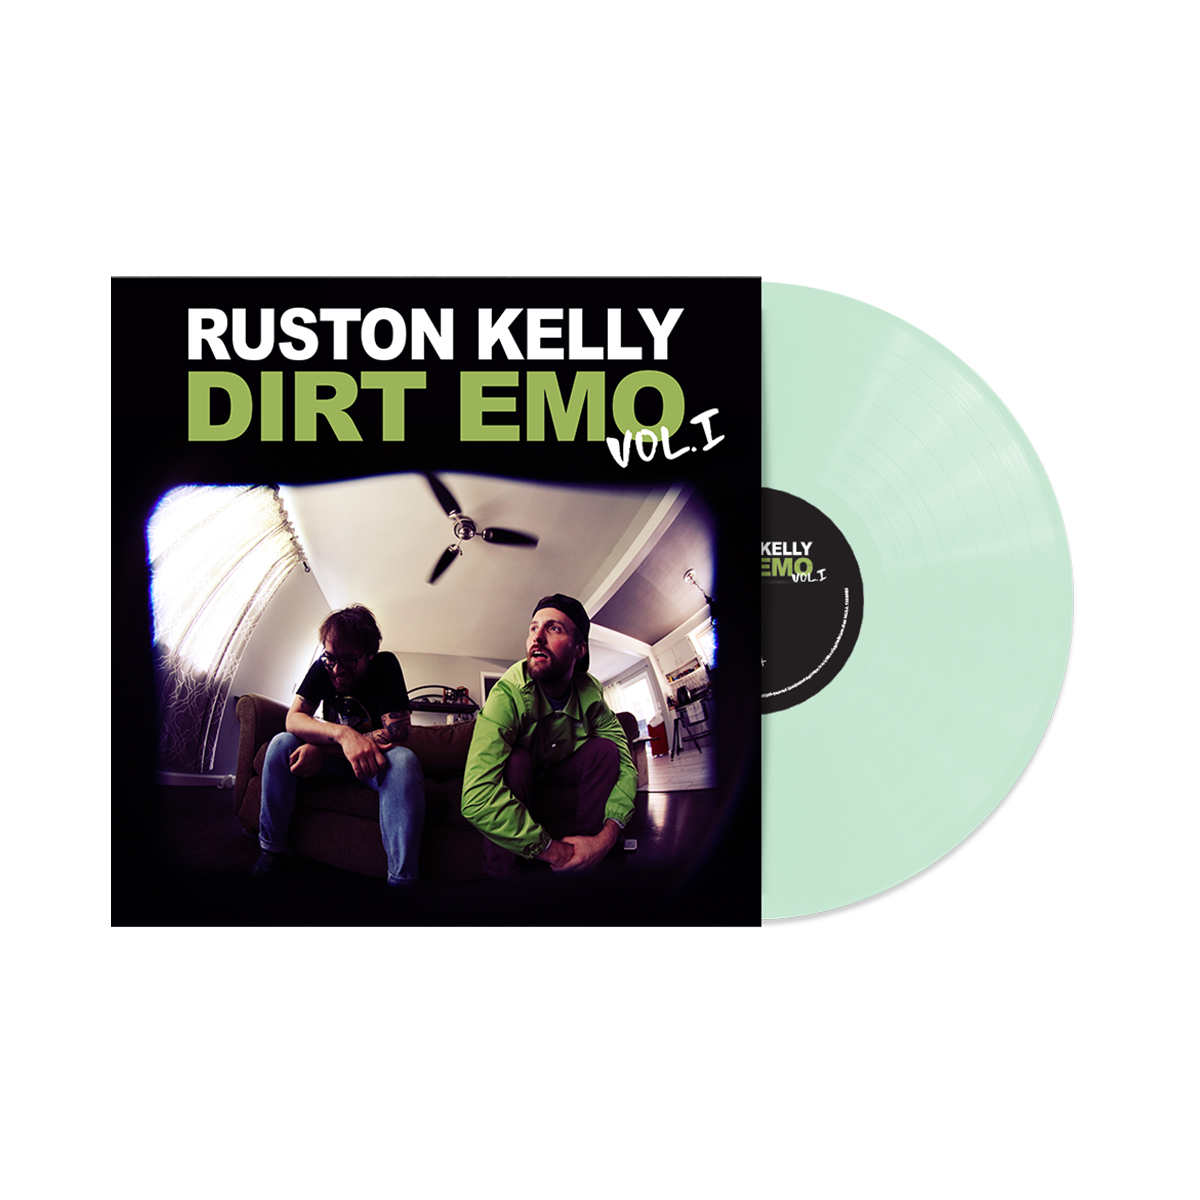 Ruston Kelly Prescription Black Tee Shirt (Unisex) + Dirt Emo Vol 1. Glow-in-the-dark Vinyl or download (optional)